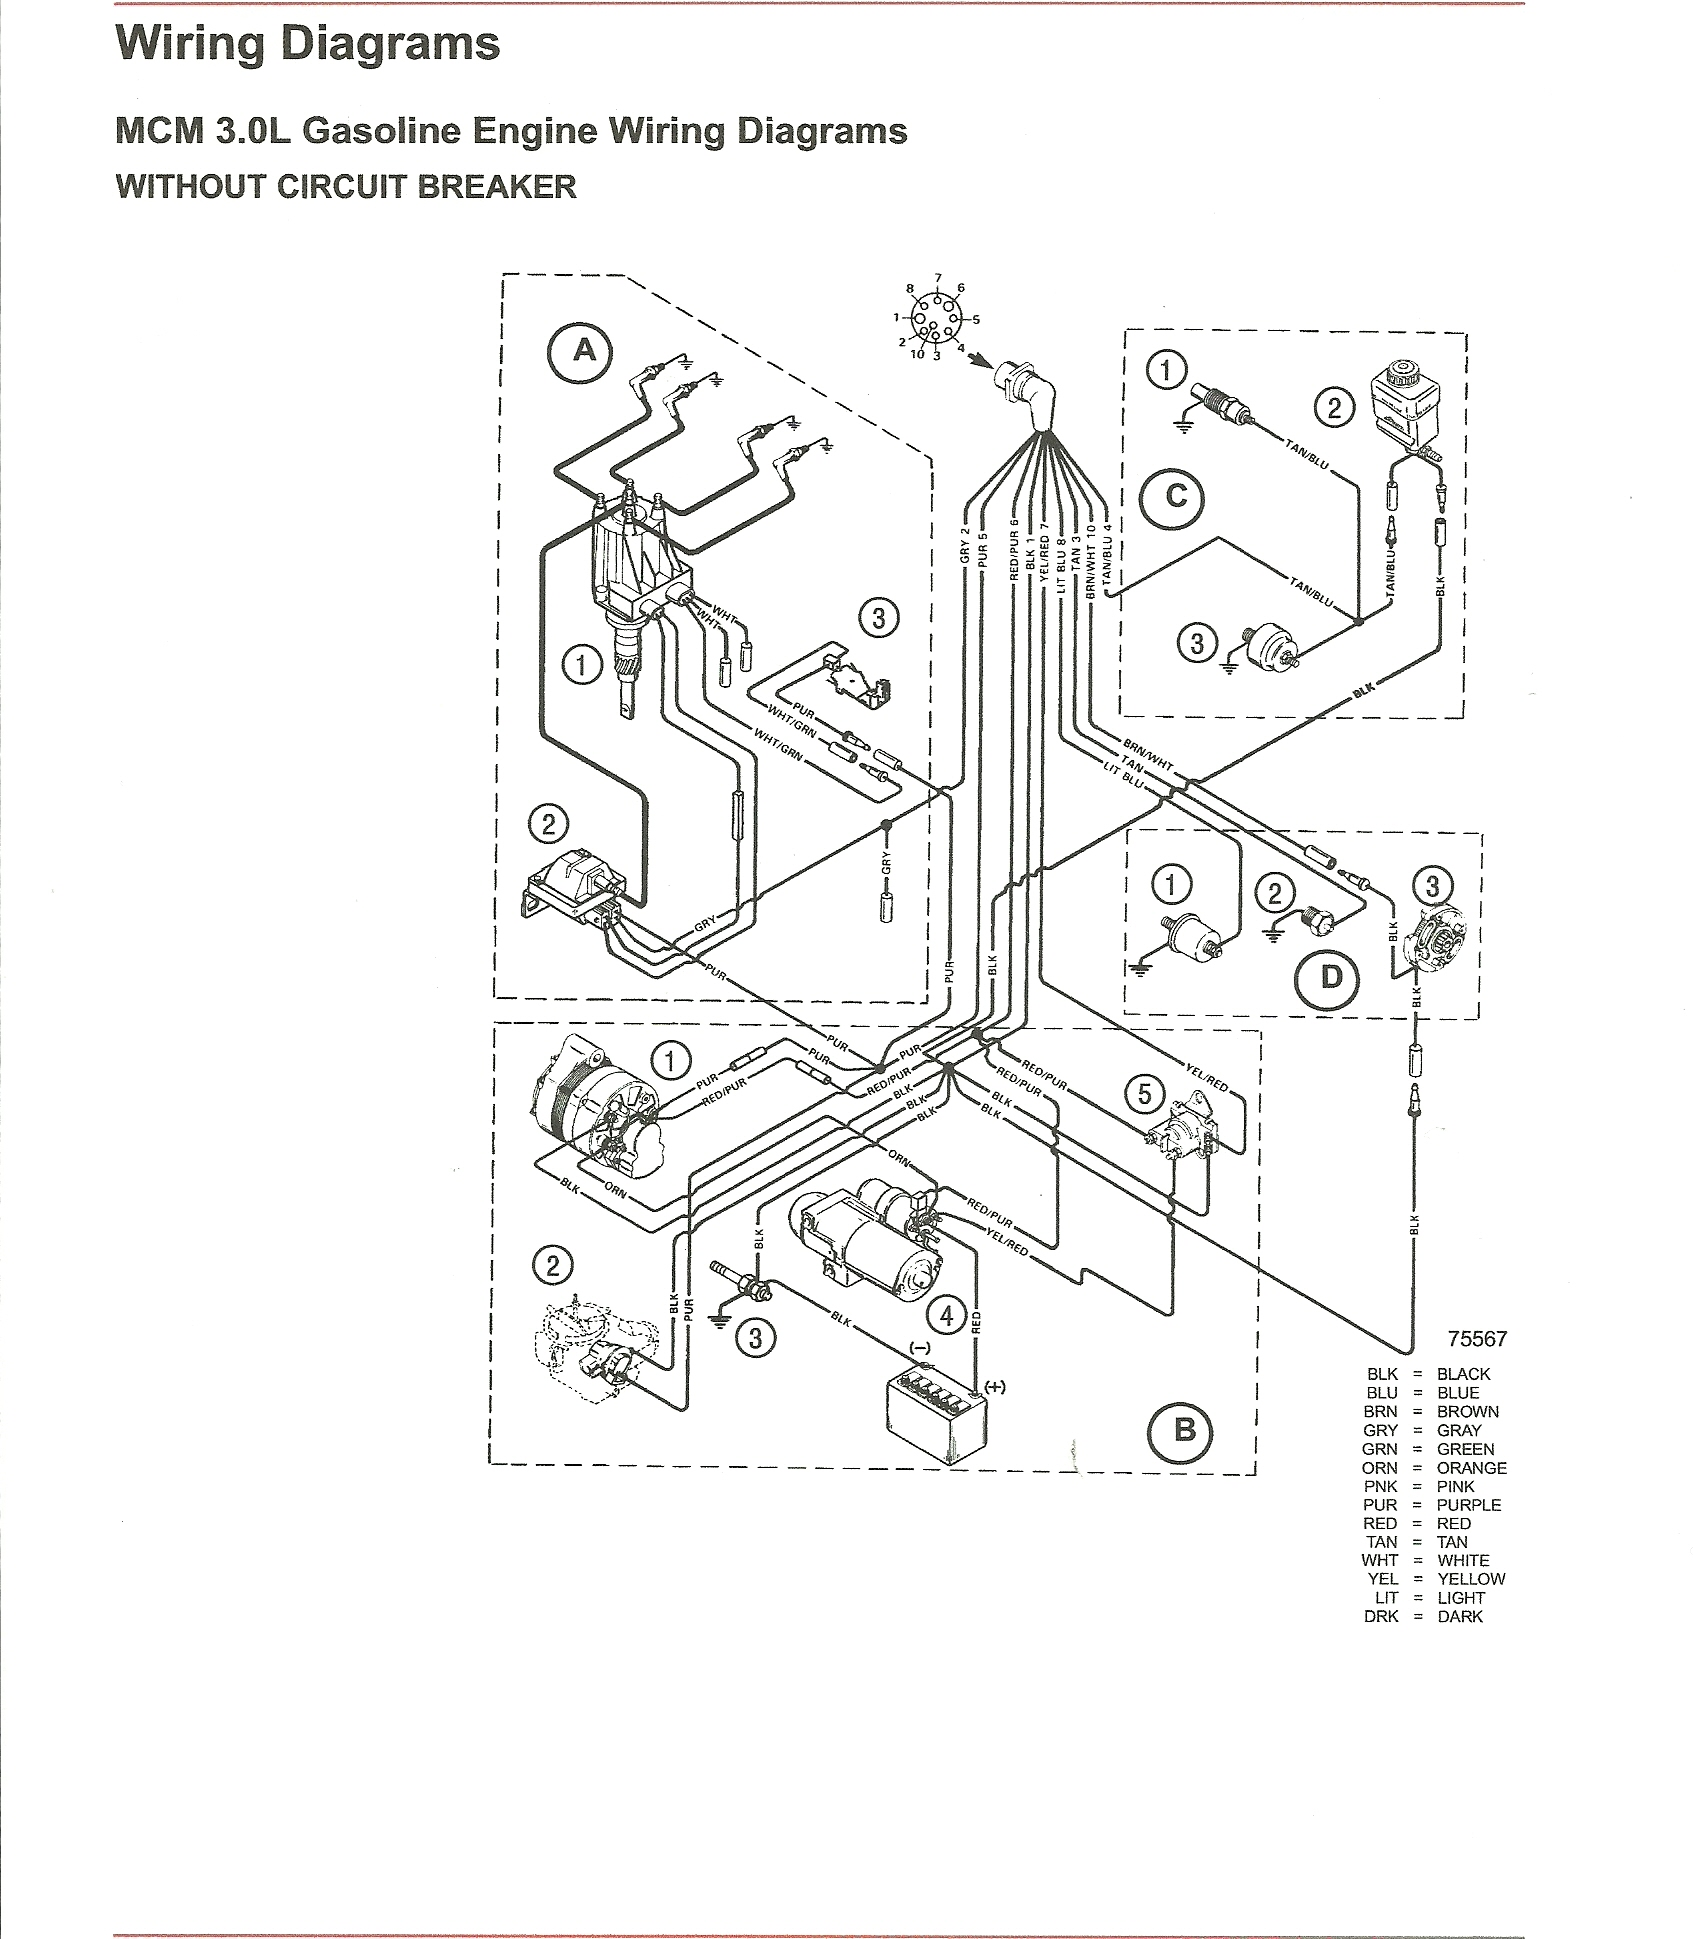 Omc Ignition Wiring Diagram - Wiring Diagram